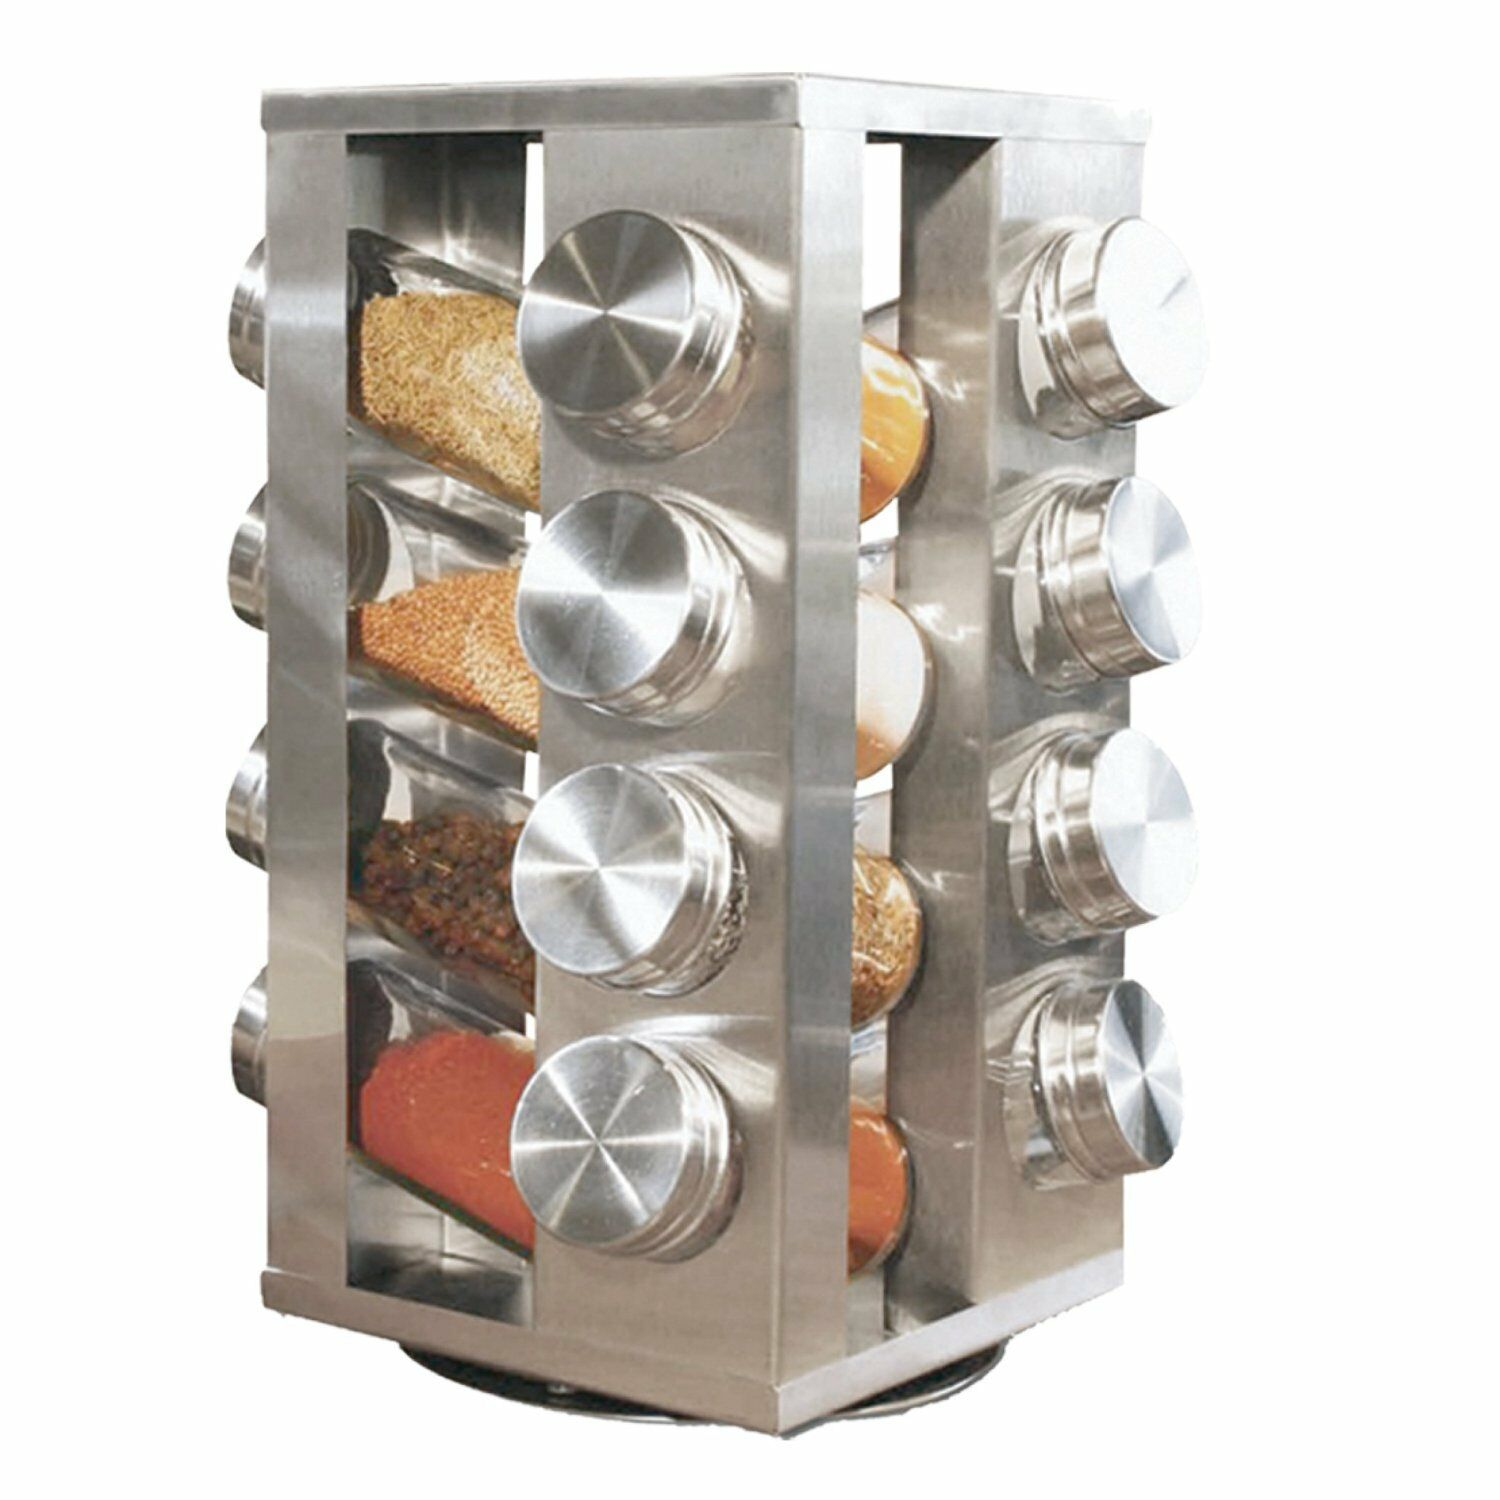 New Stainless Steel 16 Jar Revolving Spice Rack Stand